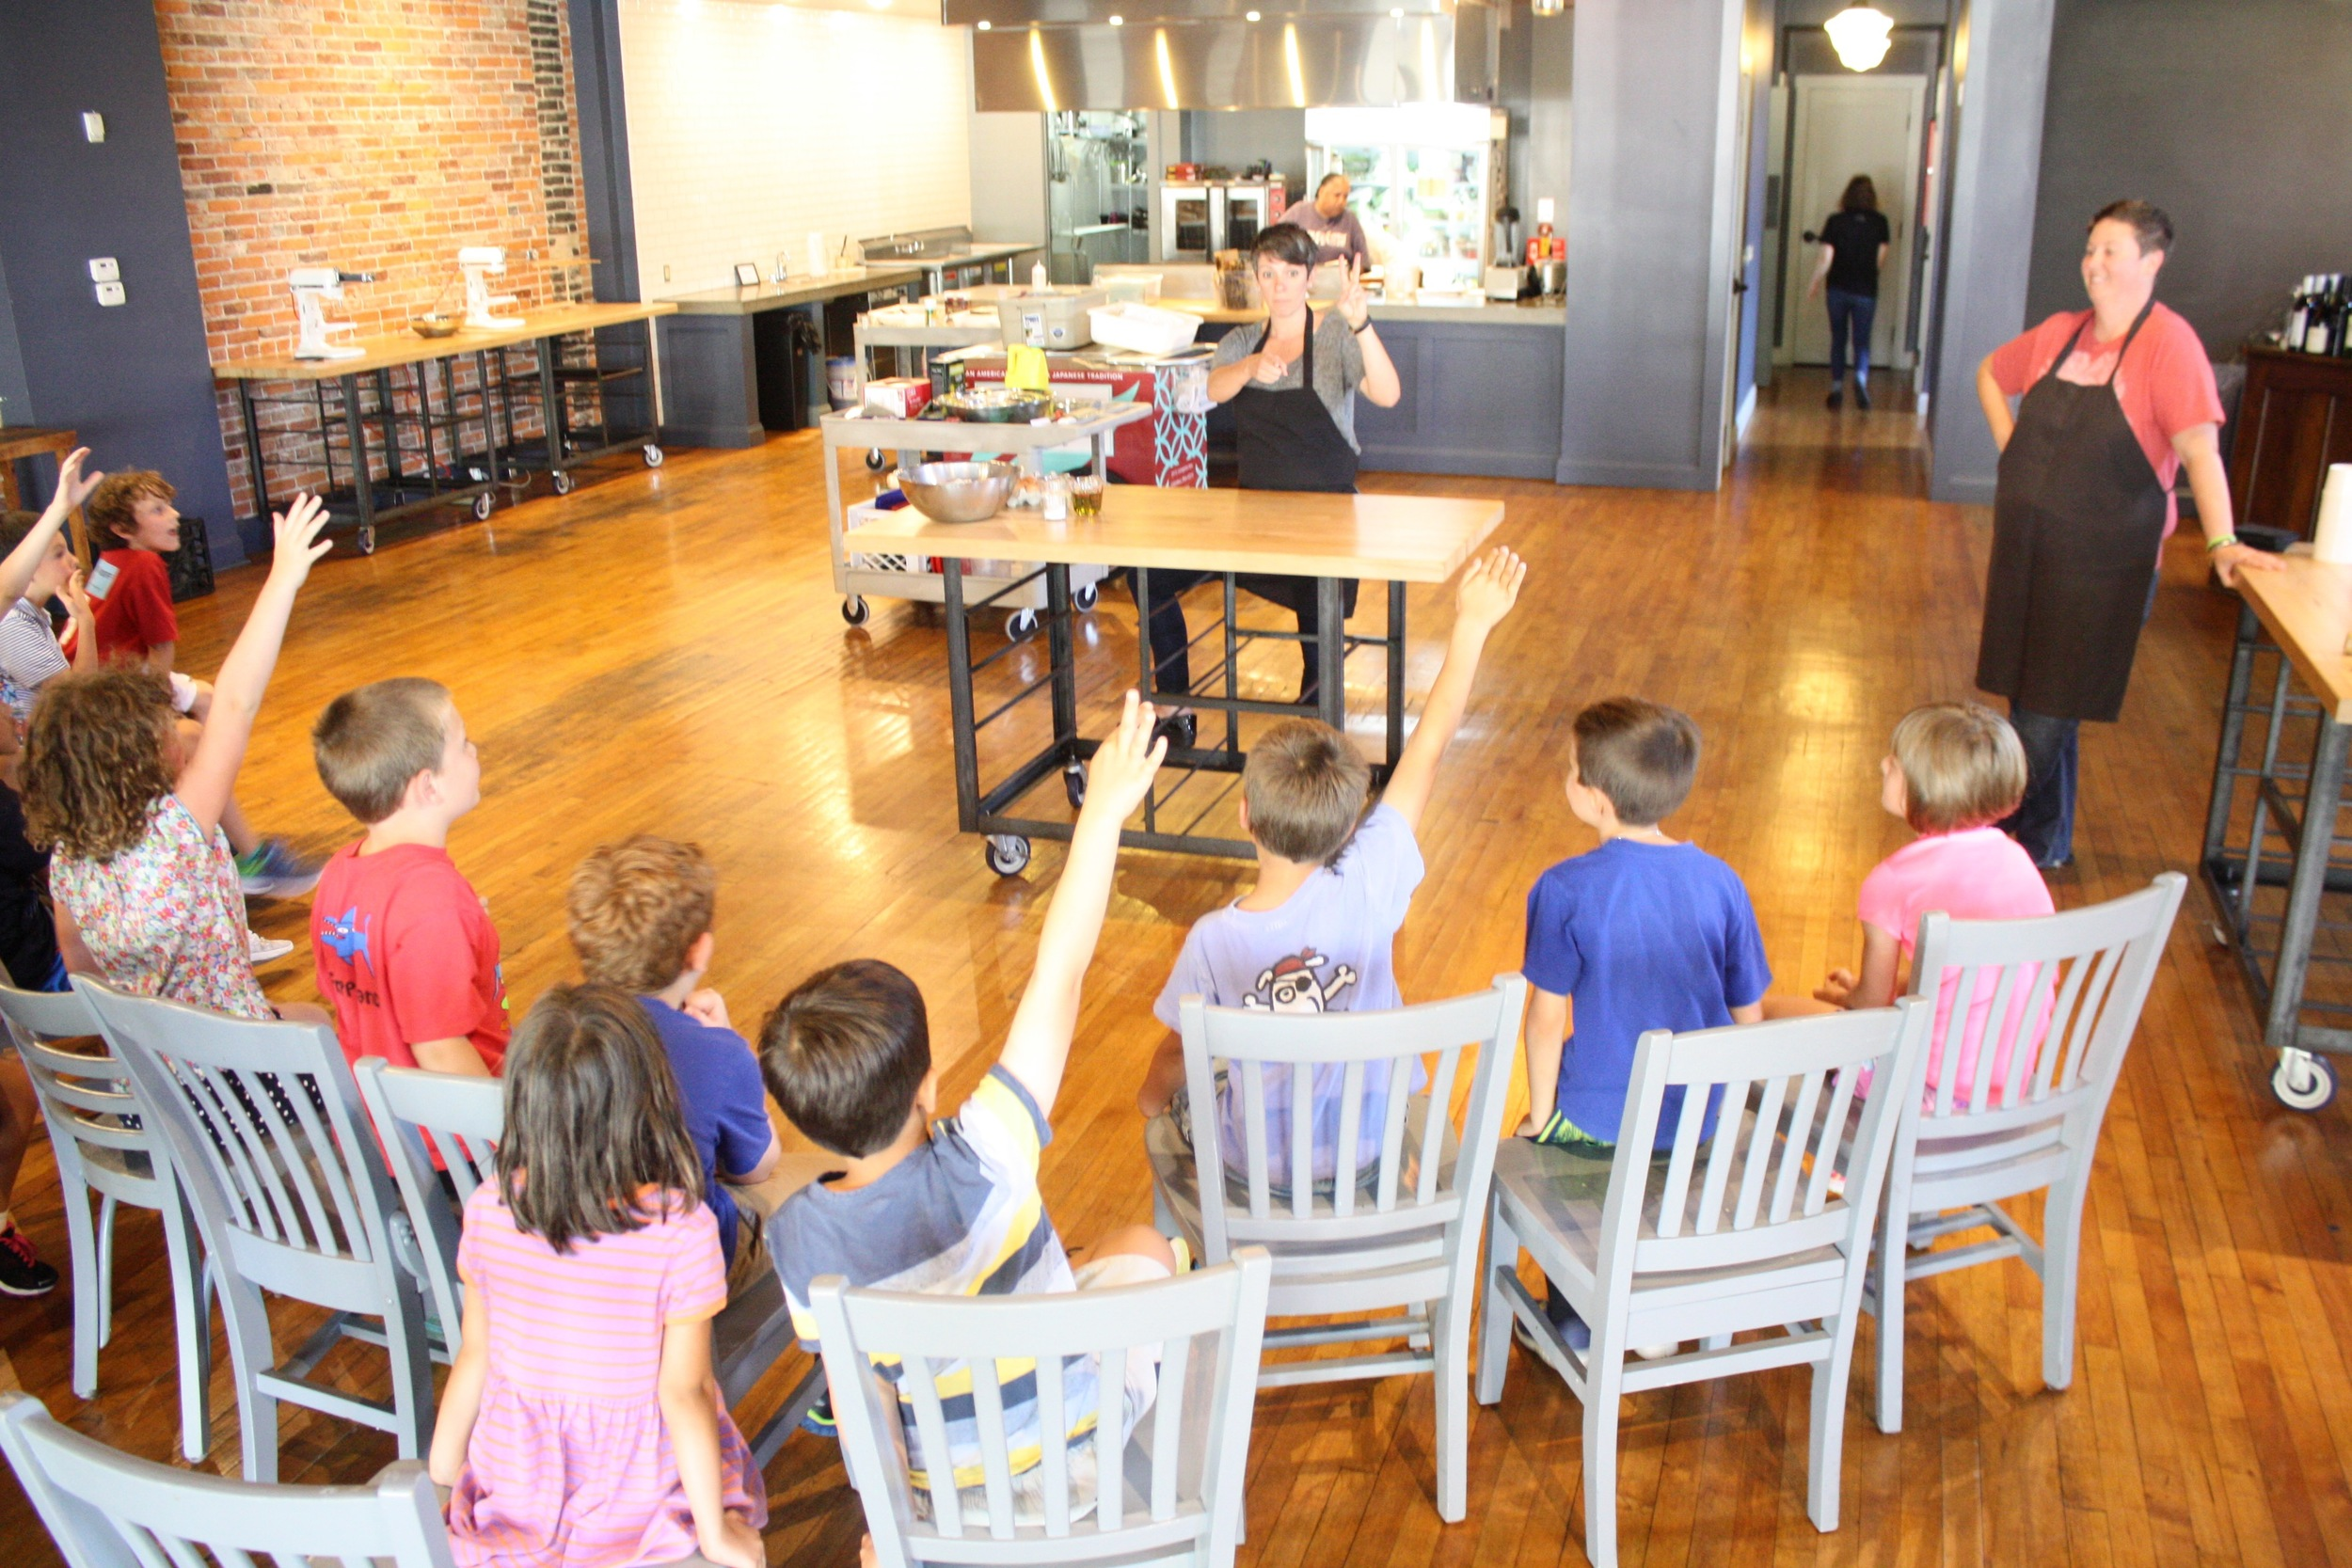 Campers from St. Joseph Montessori School's Summer Learning Camp had a great time learning to cook fresh pasta with The Kitchen!